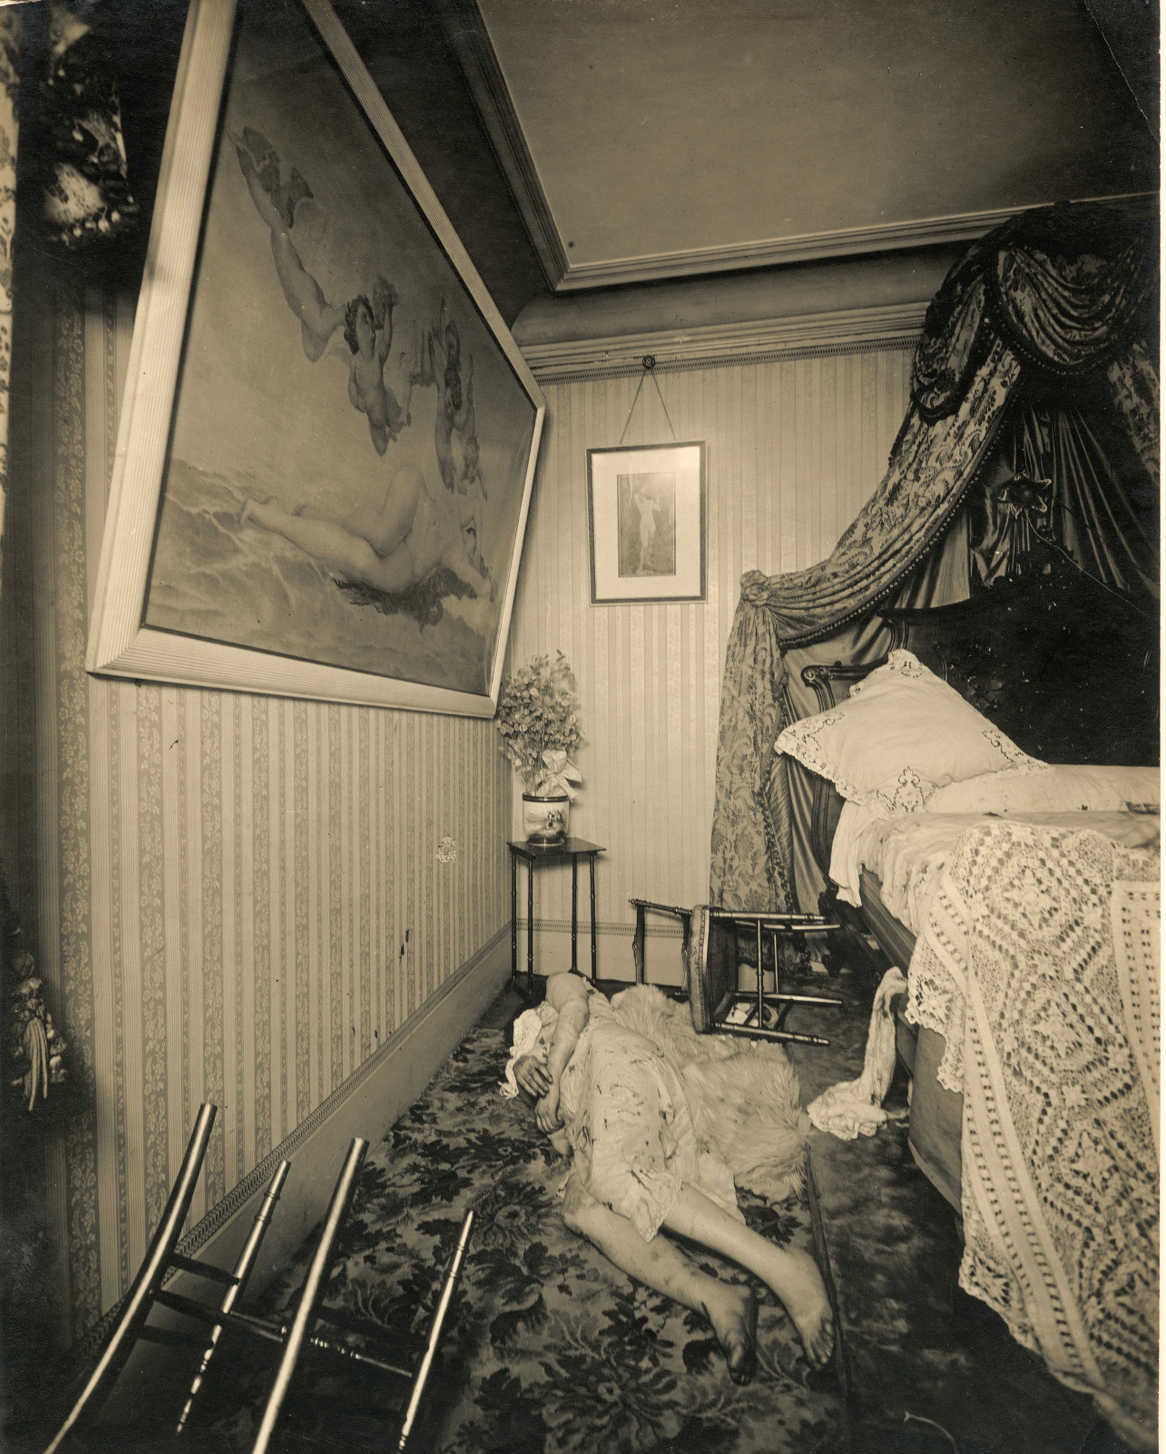 19th century crime scene photos Cached